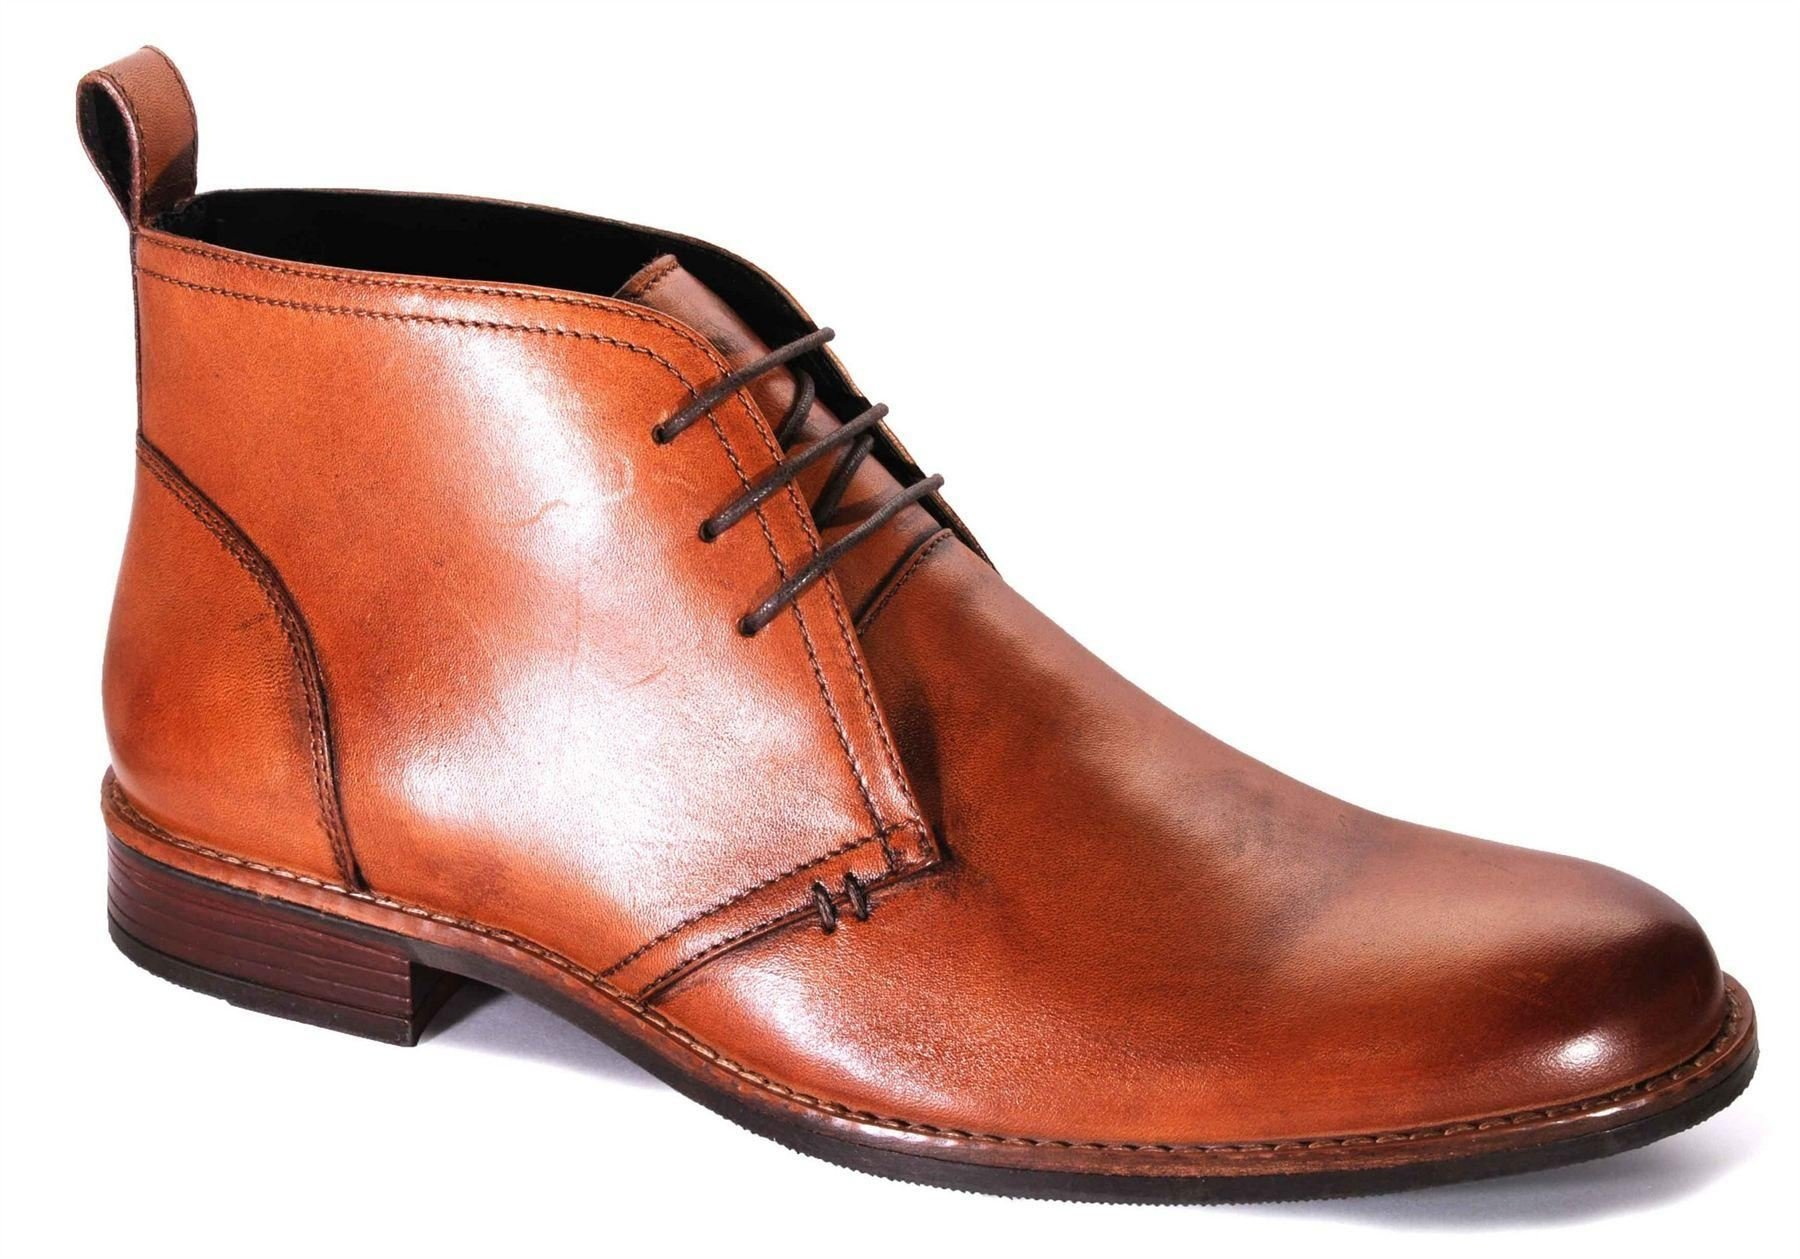 Catesby Mens Leather Smart Lace Up